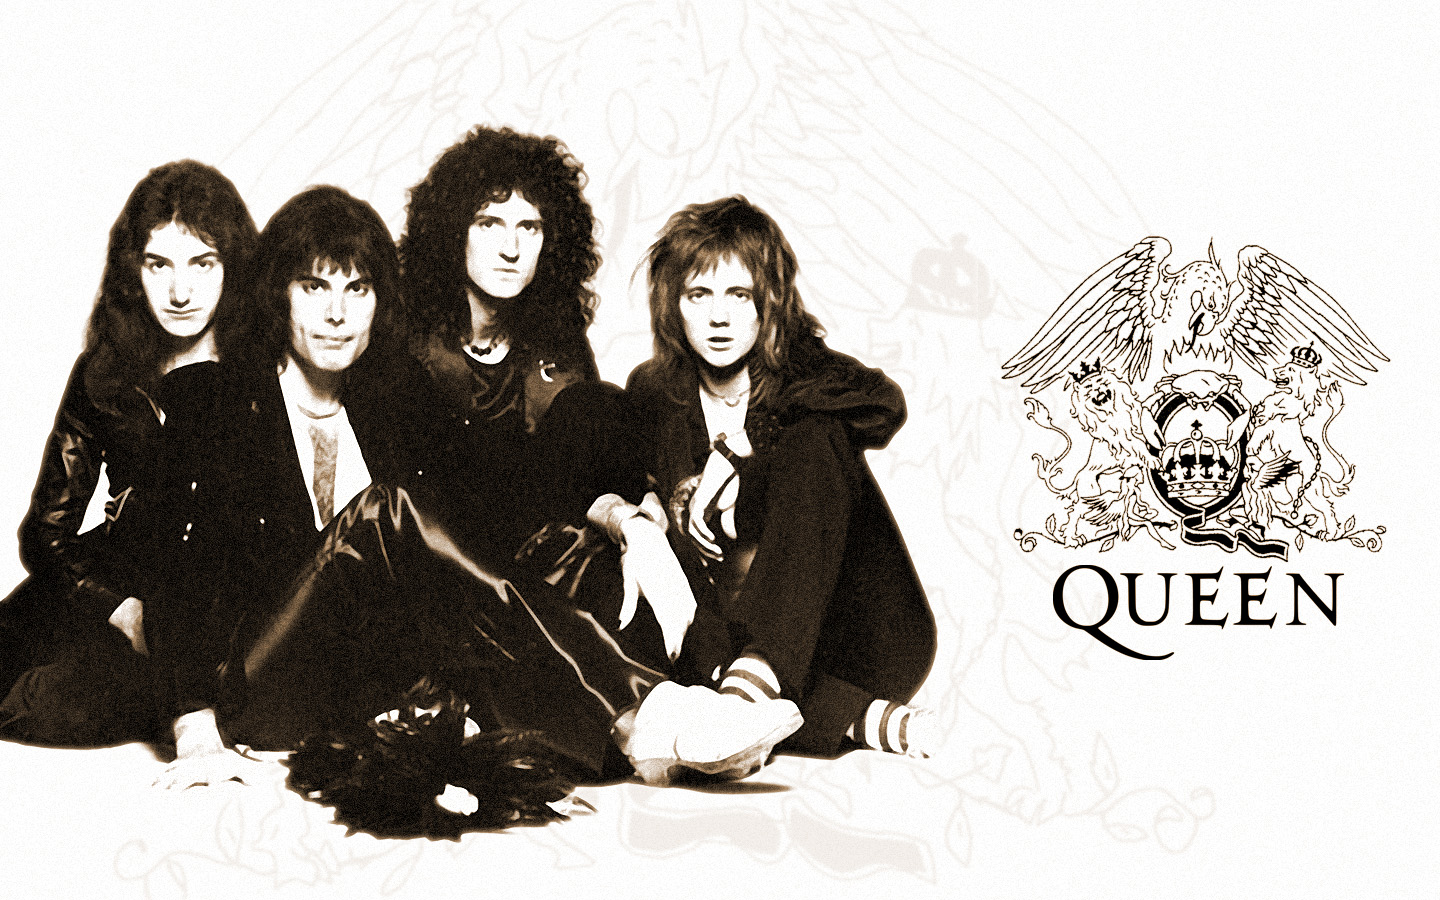 Rock Band Wallpapers The Greatest Band Queen Wallpaper 1440x900